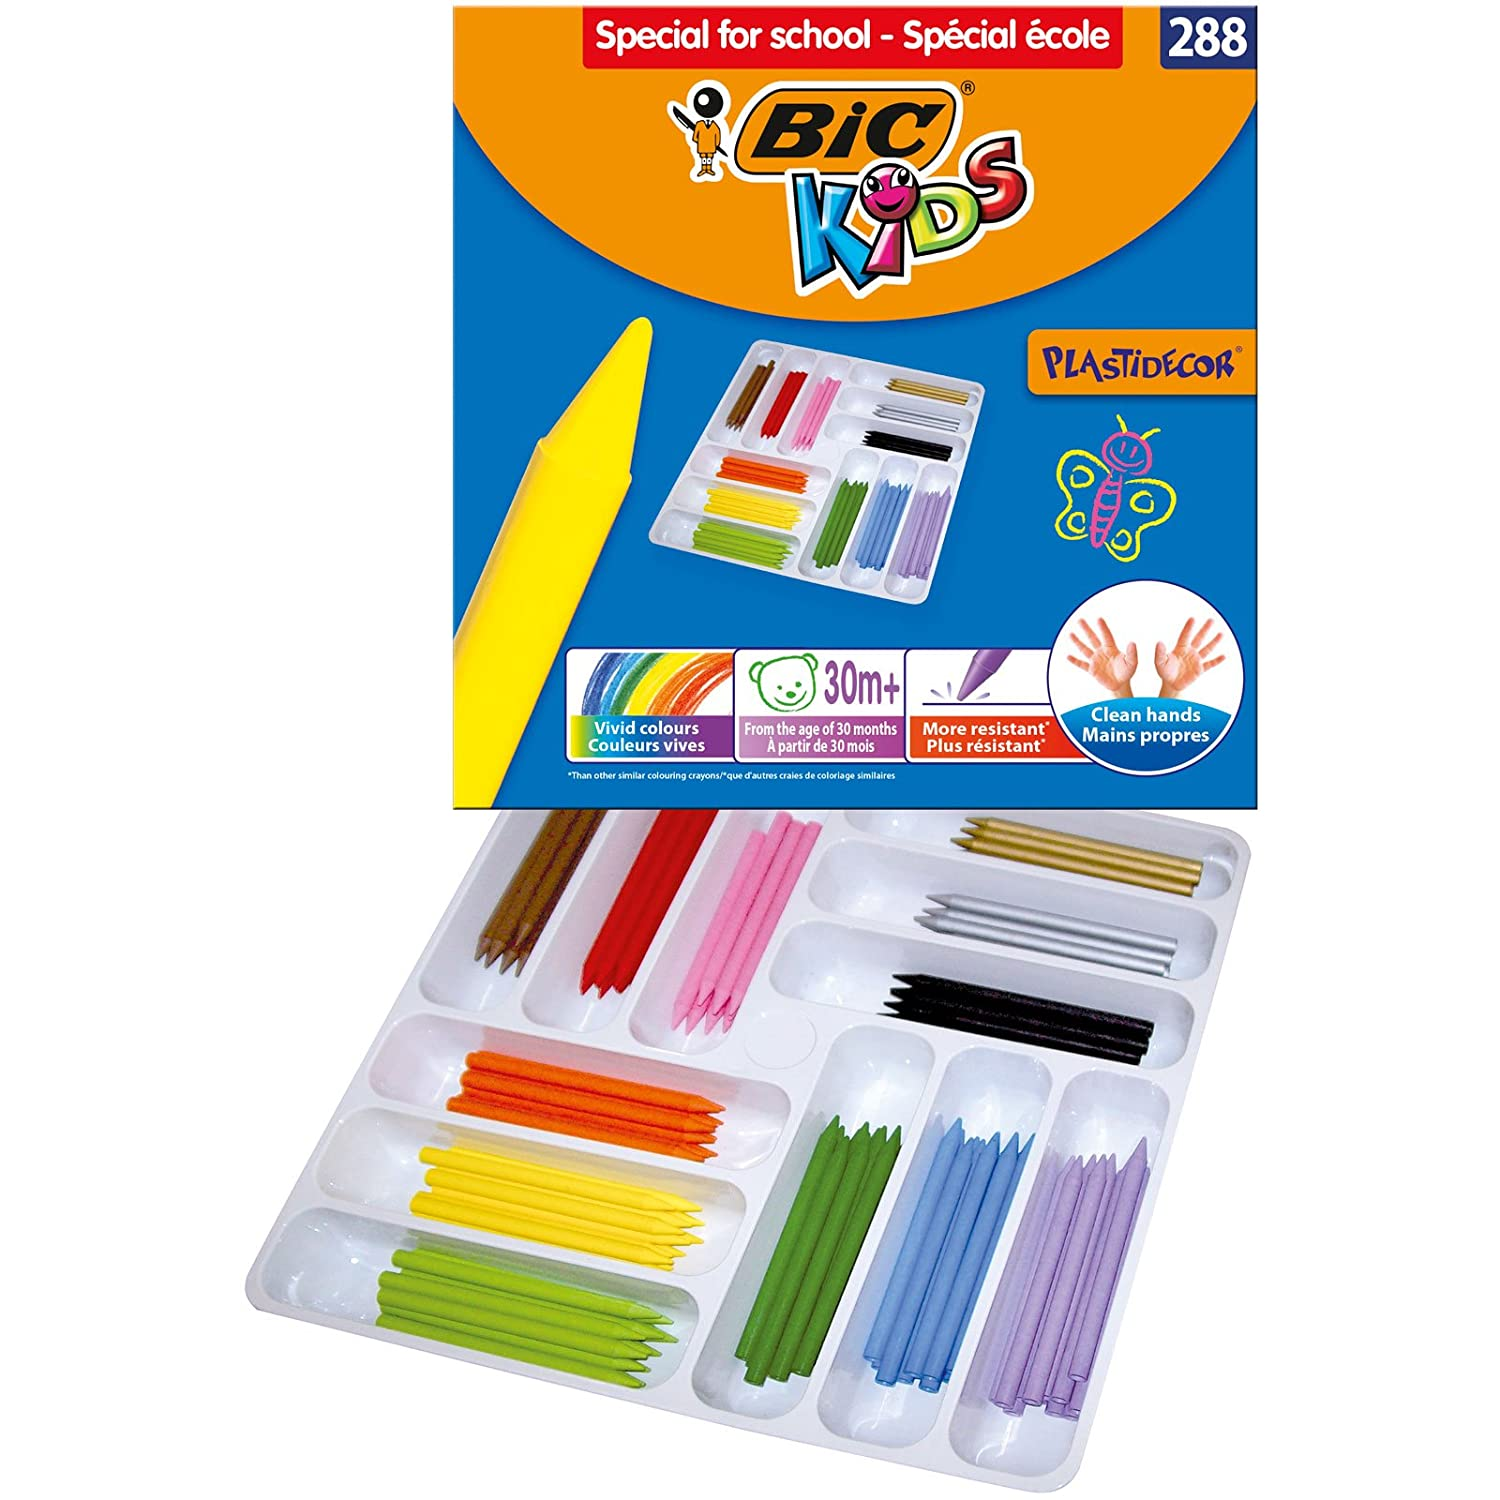 BIC Kids Plastidecor Colouring Crayons - Assorted Colours, Cardboard Wallet of 12 945764 B00008D0TK